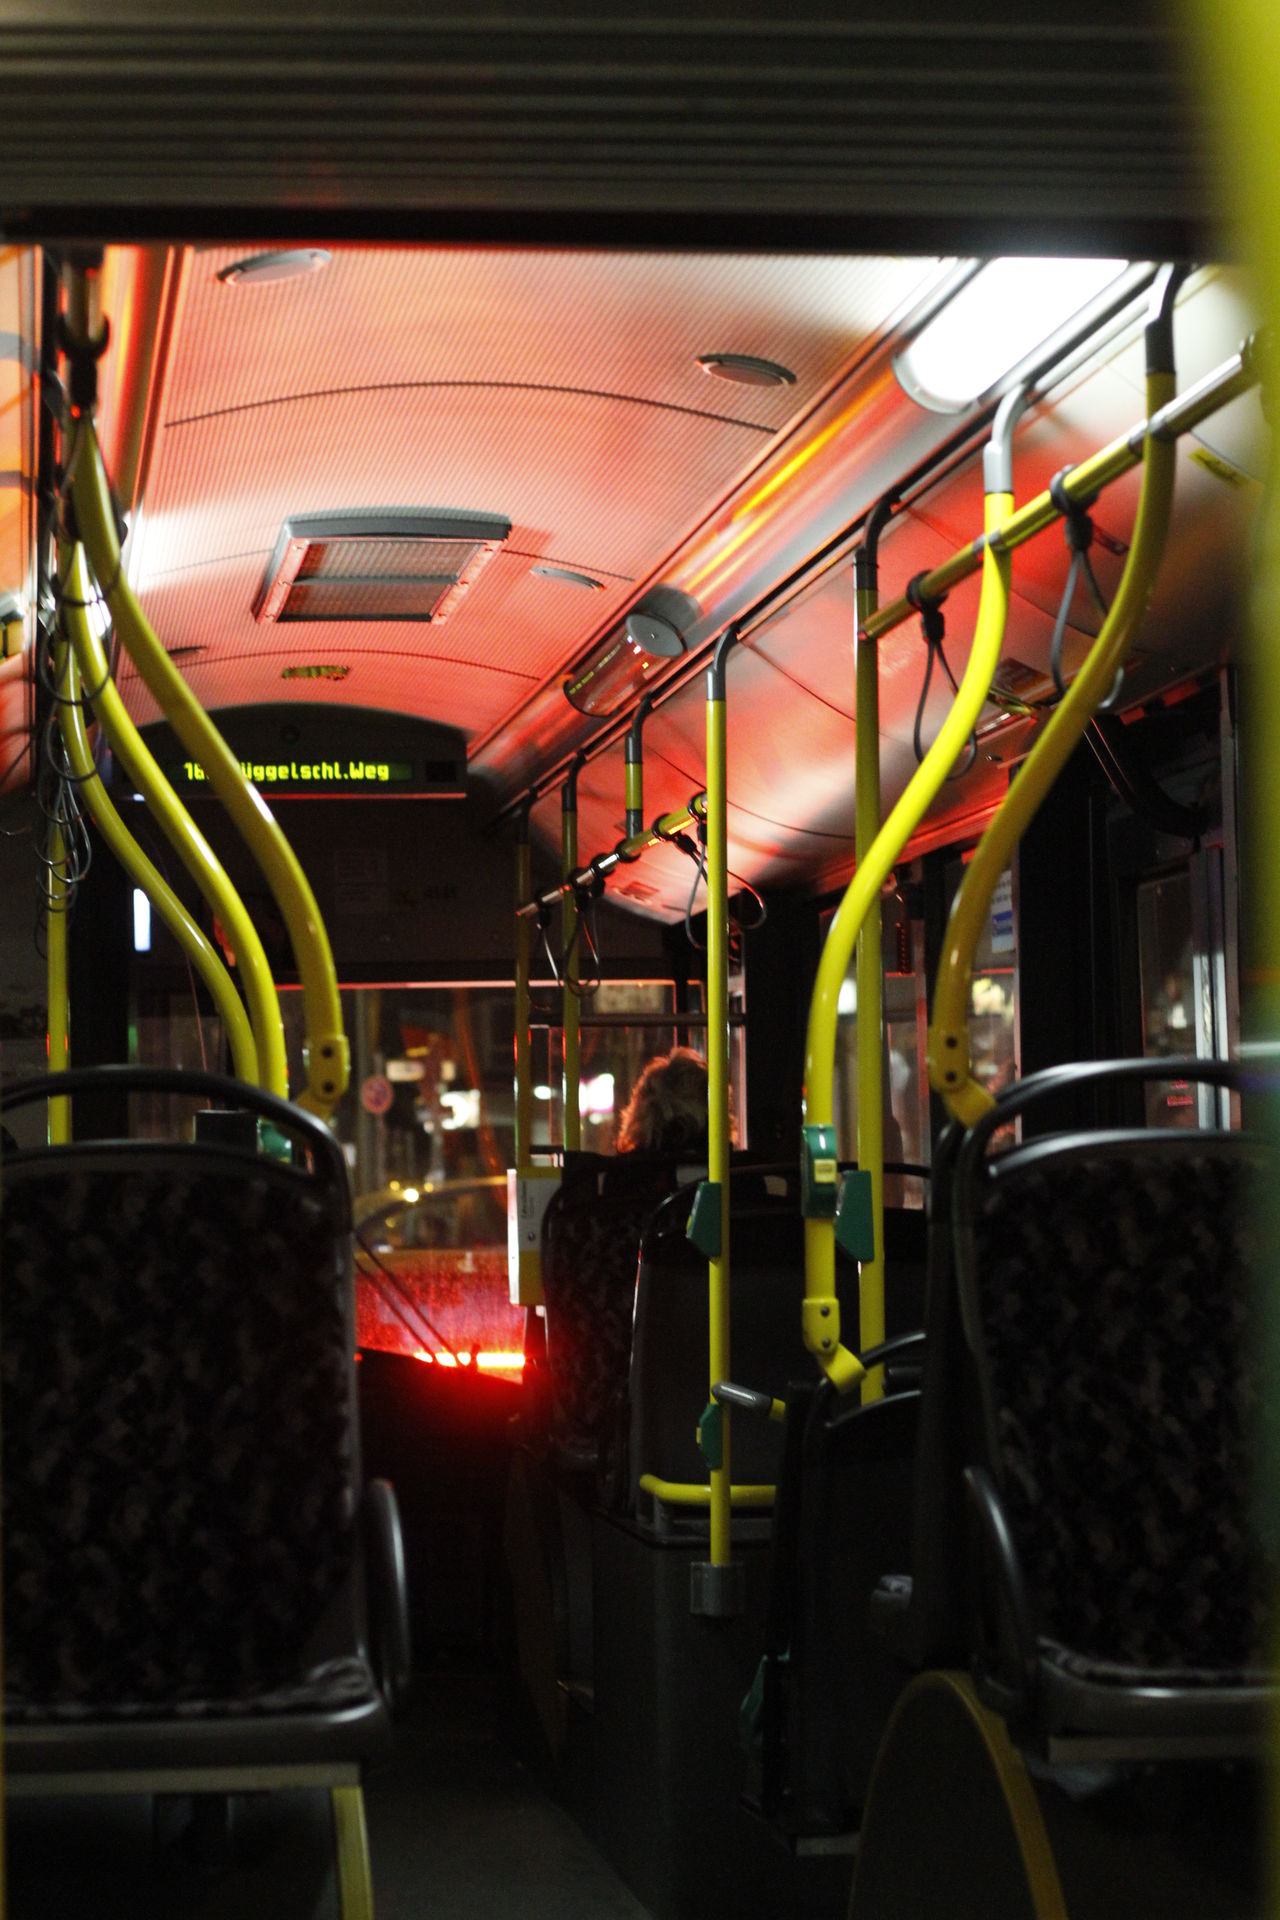 öffentlicher Bus BVG Bus Commuter Train Illuminated Indoors  Land Vehicle Mode Of Transport Night One Person People Public Transportation Rail Transportation Real People Sitting Subway Train Train - Vehicle Transportation Vehicle Interior Vehicle Seat